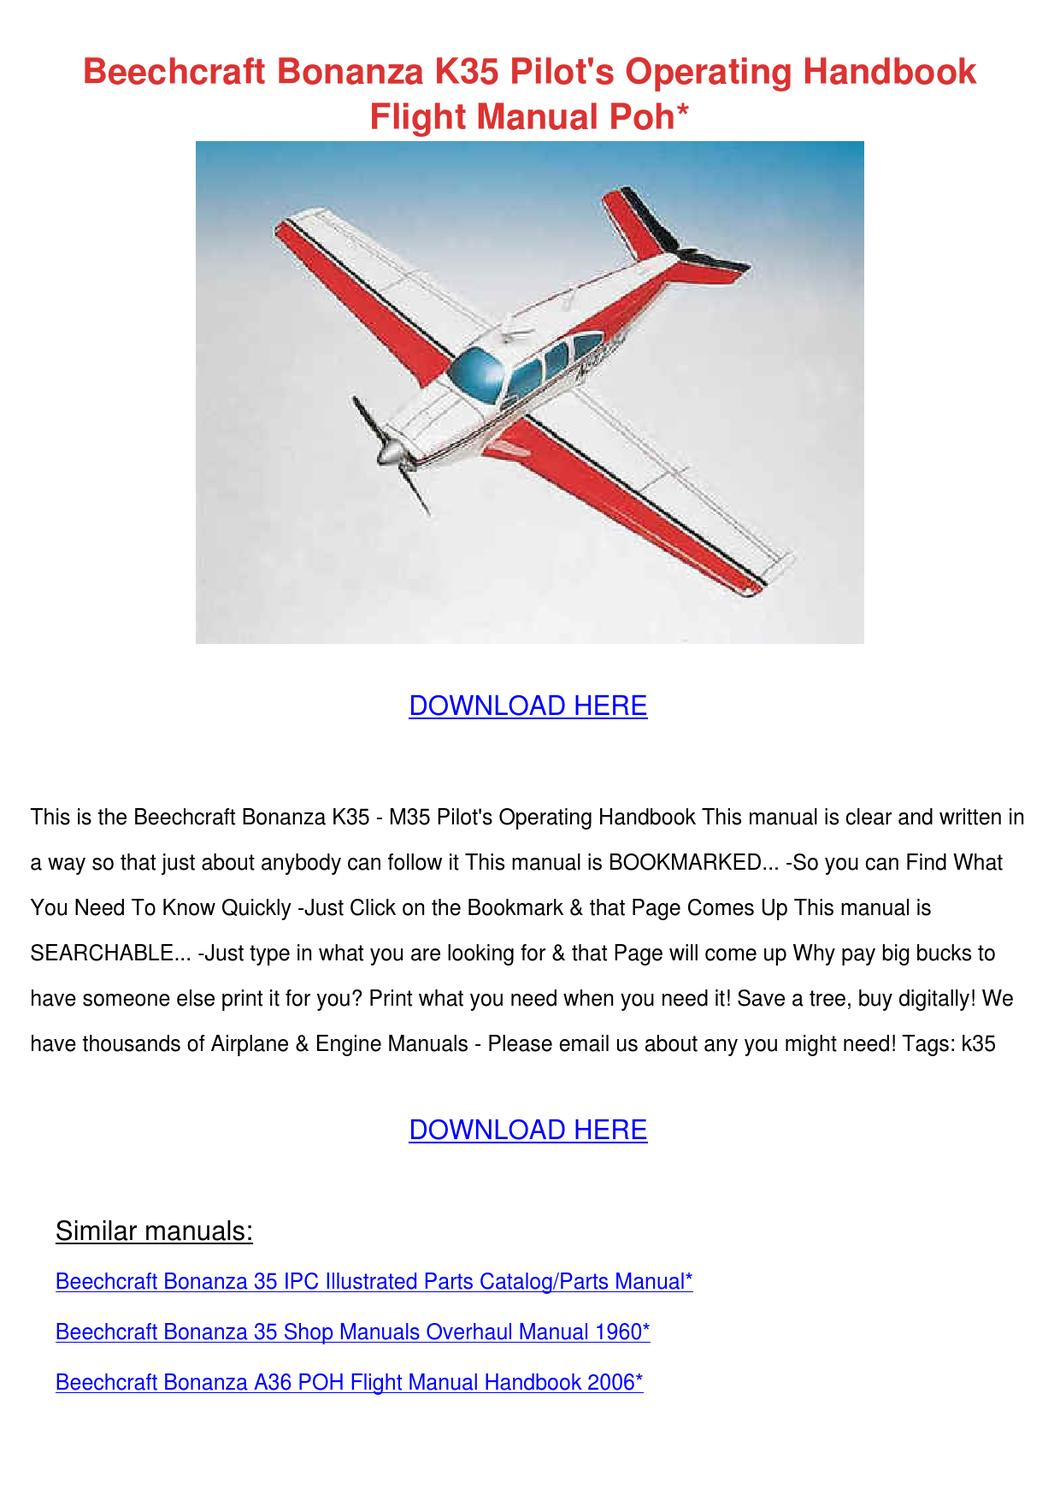 Beechcraft Bonanza K35 Pilots Operating Handb by Kattie Macedonio - issuu